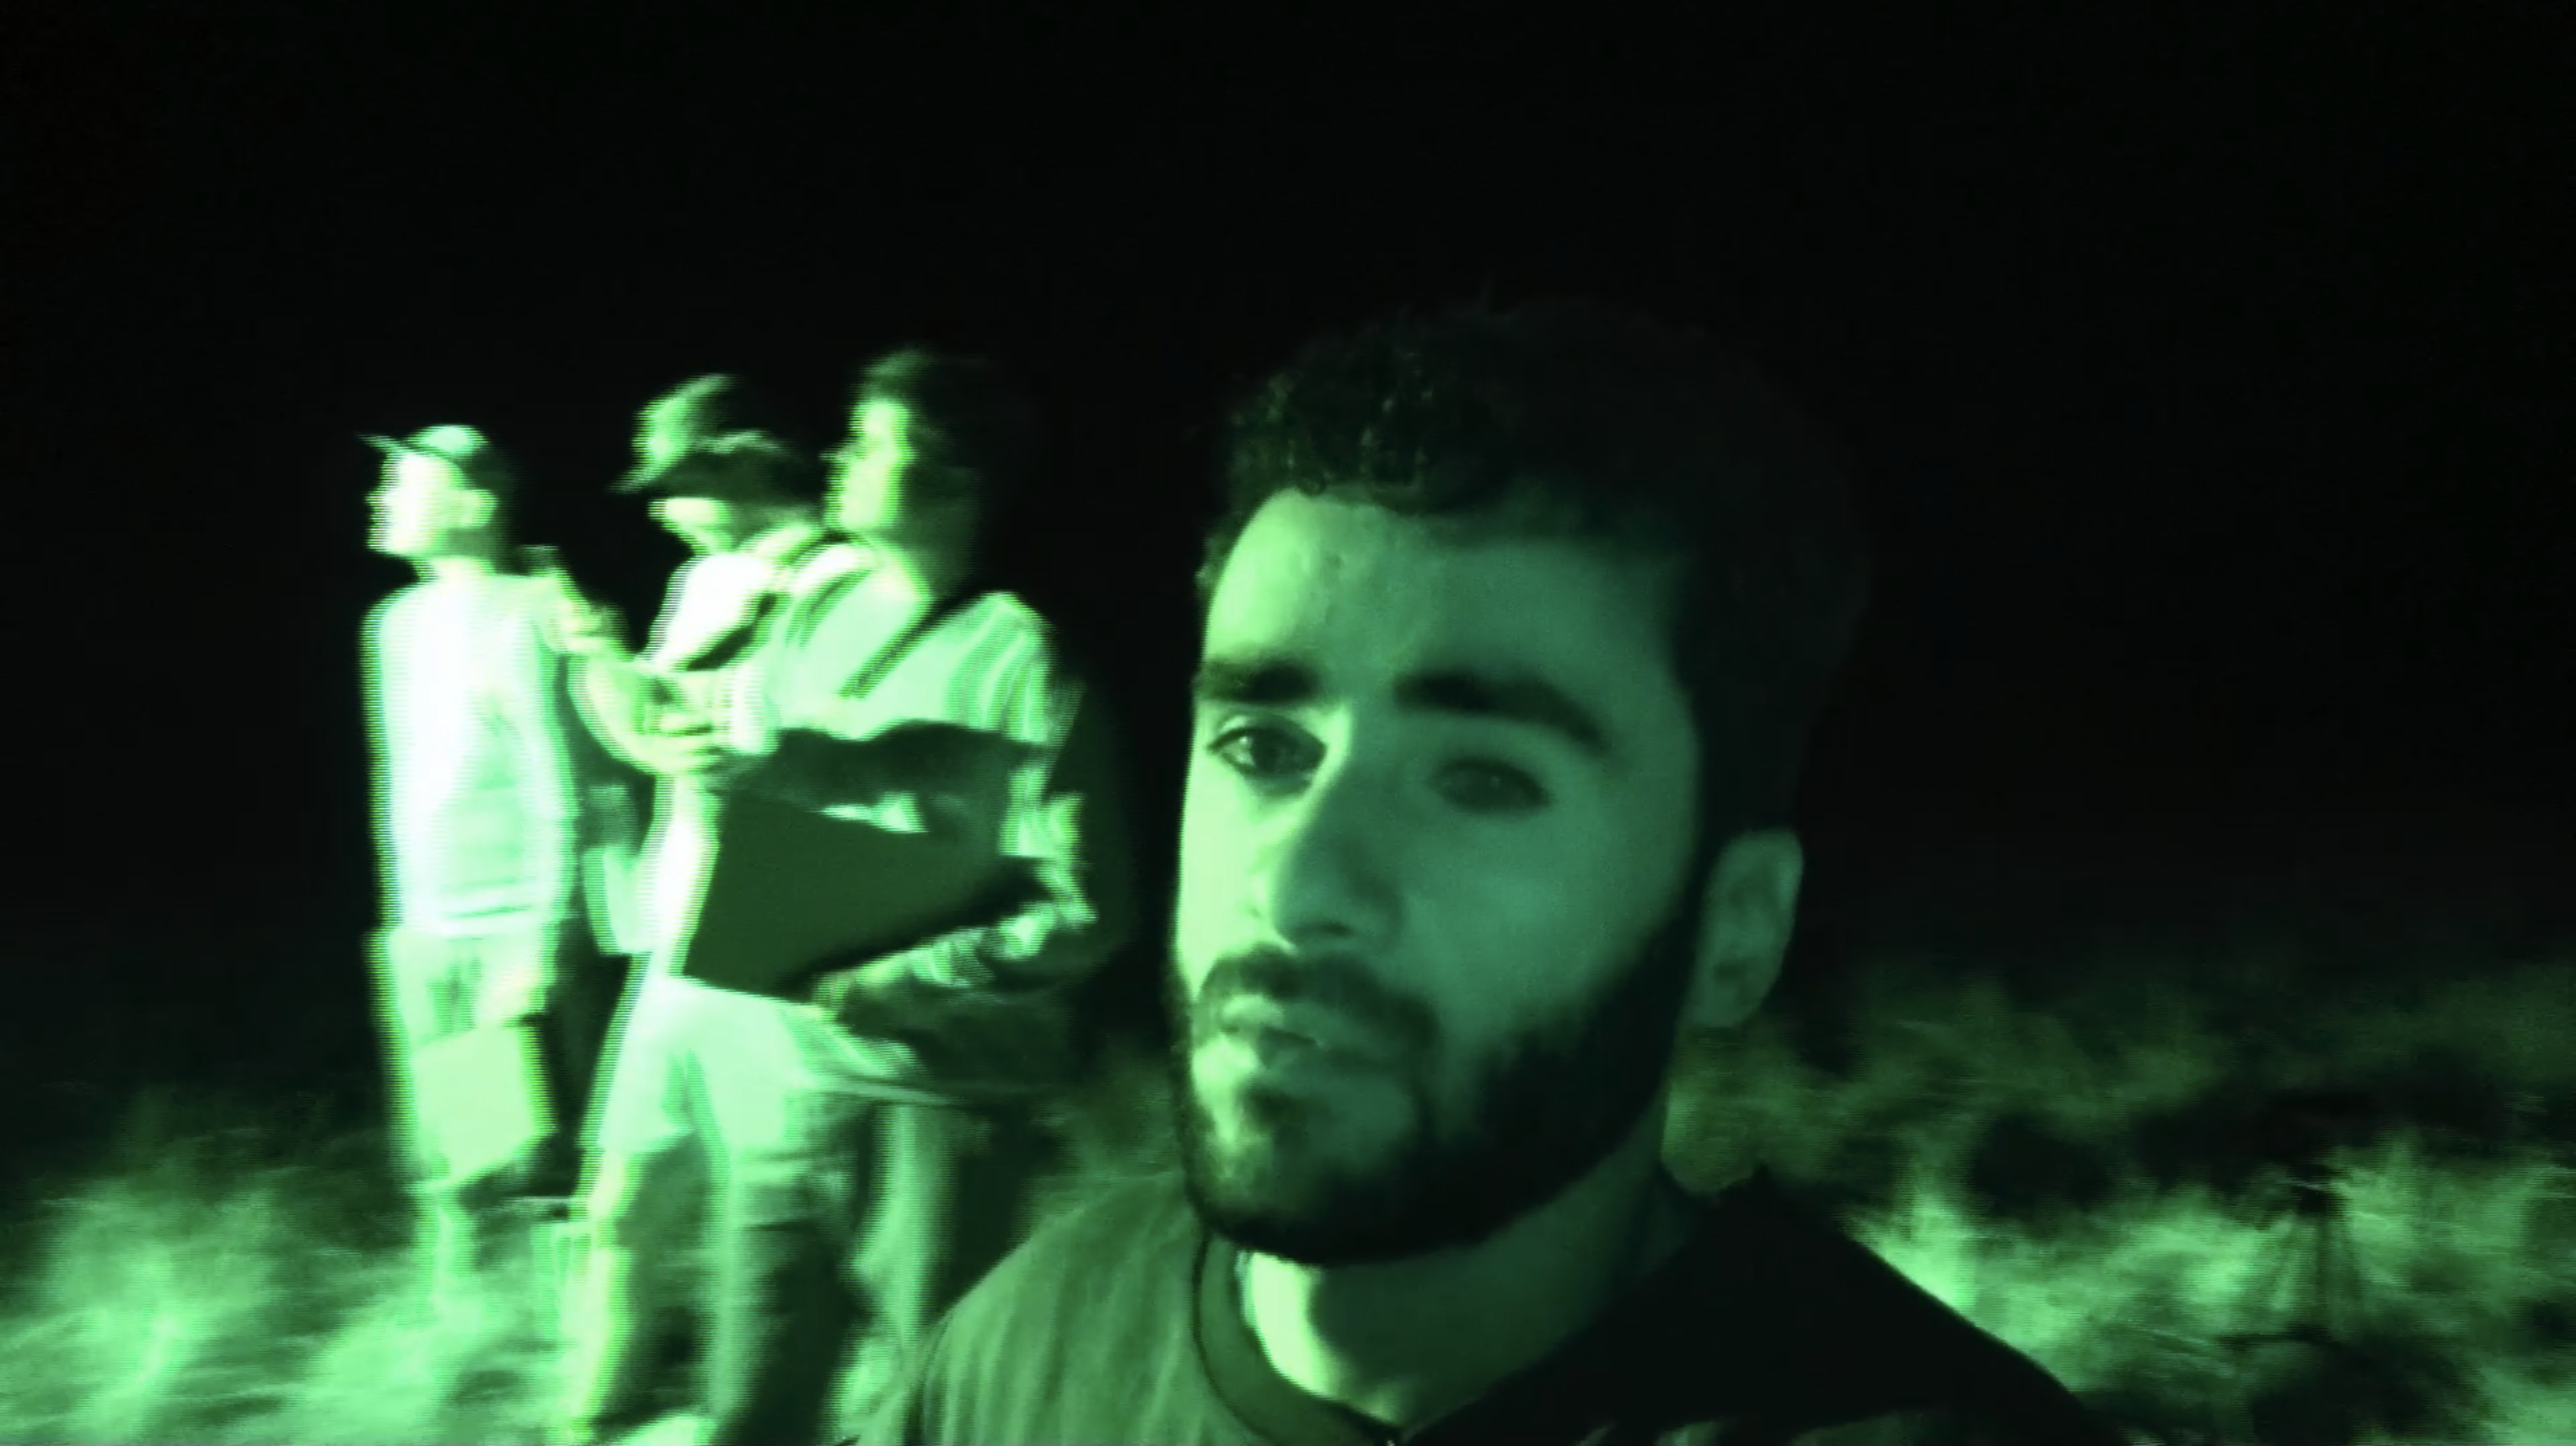 Still from 'Wat we niet wisten over koeien'. It looks like a nightvision camera; the whole screen is green. Soner is looking into the camera, bewildered. The rest of the crew is in the background.